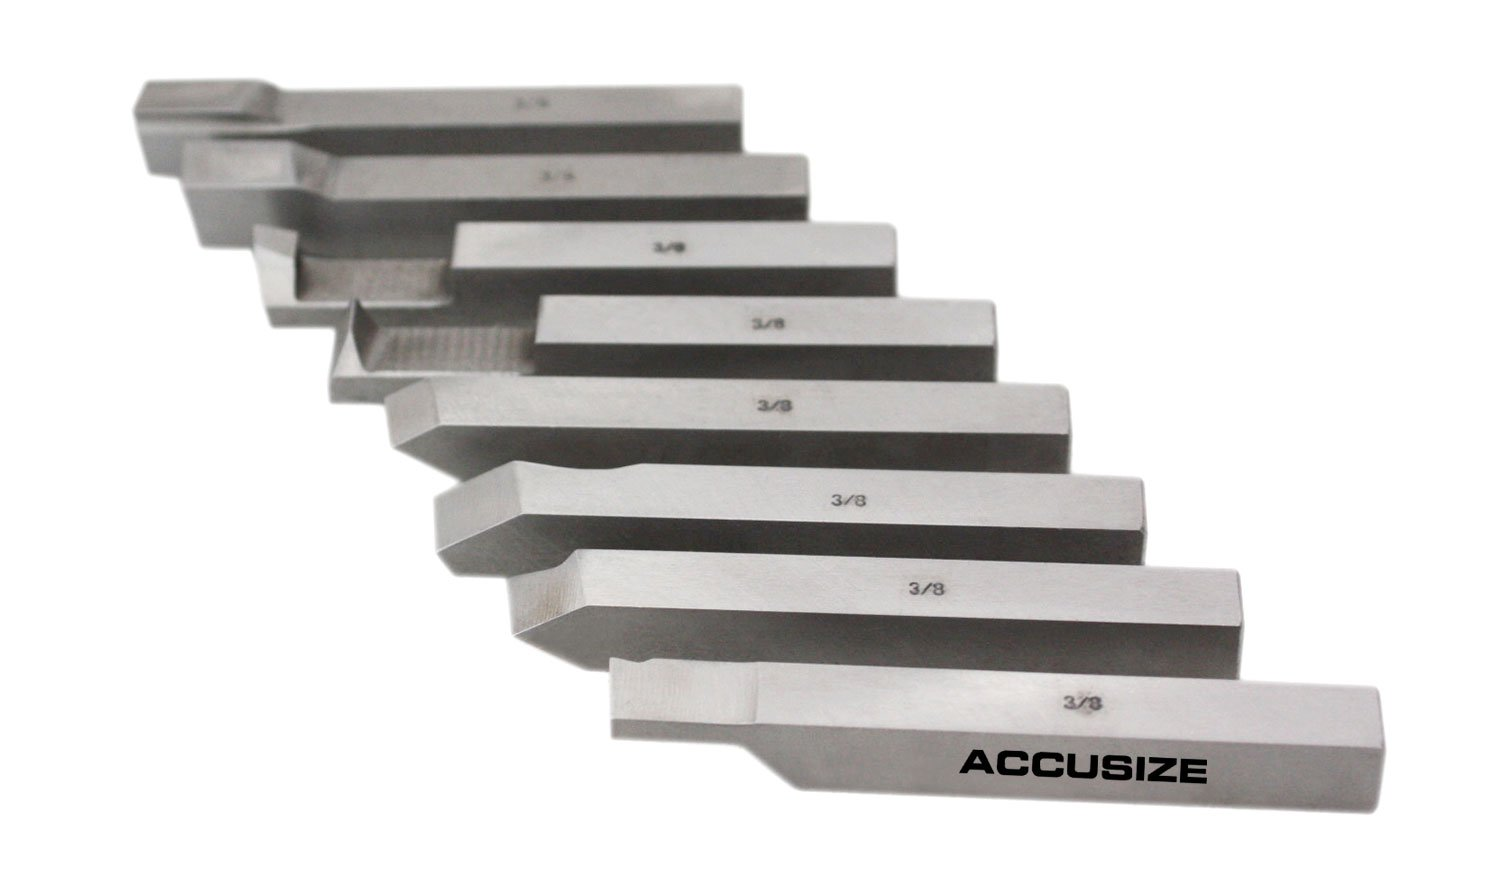 AccusizeTools - 8 pcs H.S.S. Tool Bit Set, Pre-Ground for Turning & Facing Work, for Aluminum.Steel, Brass, Plastic & Wood (3/8 inch)